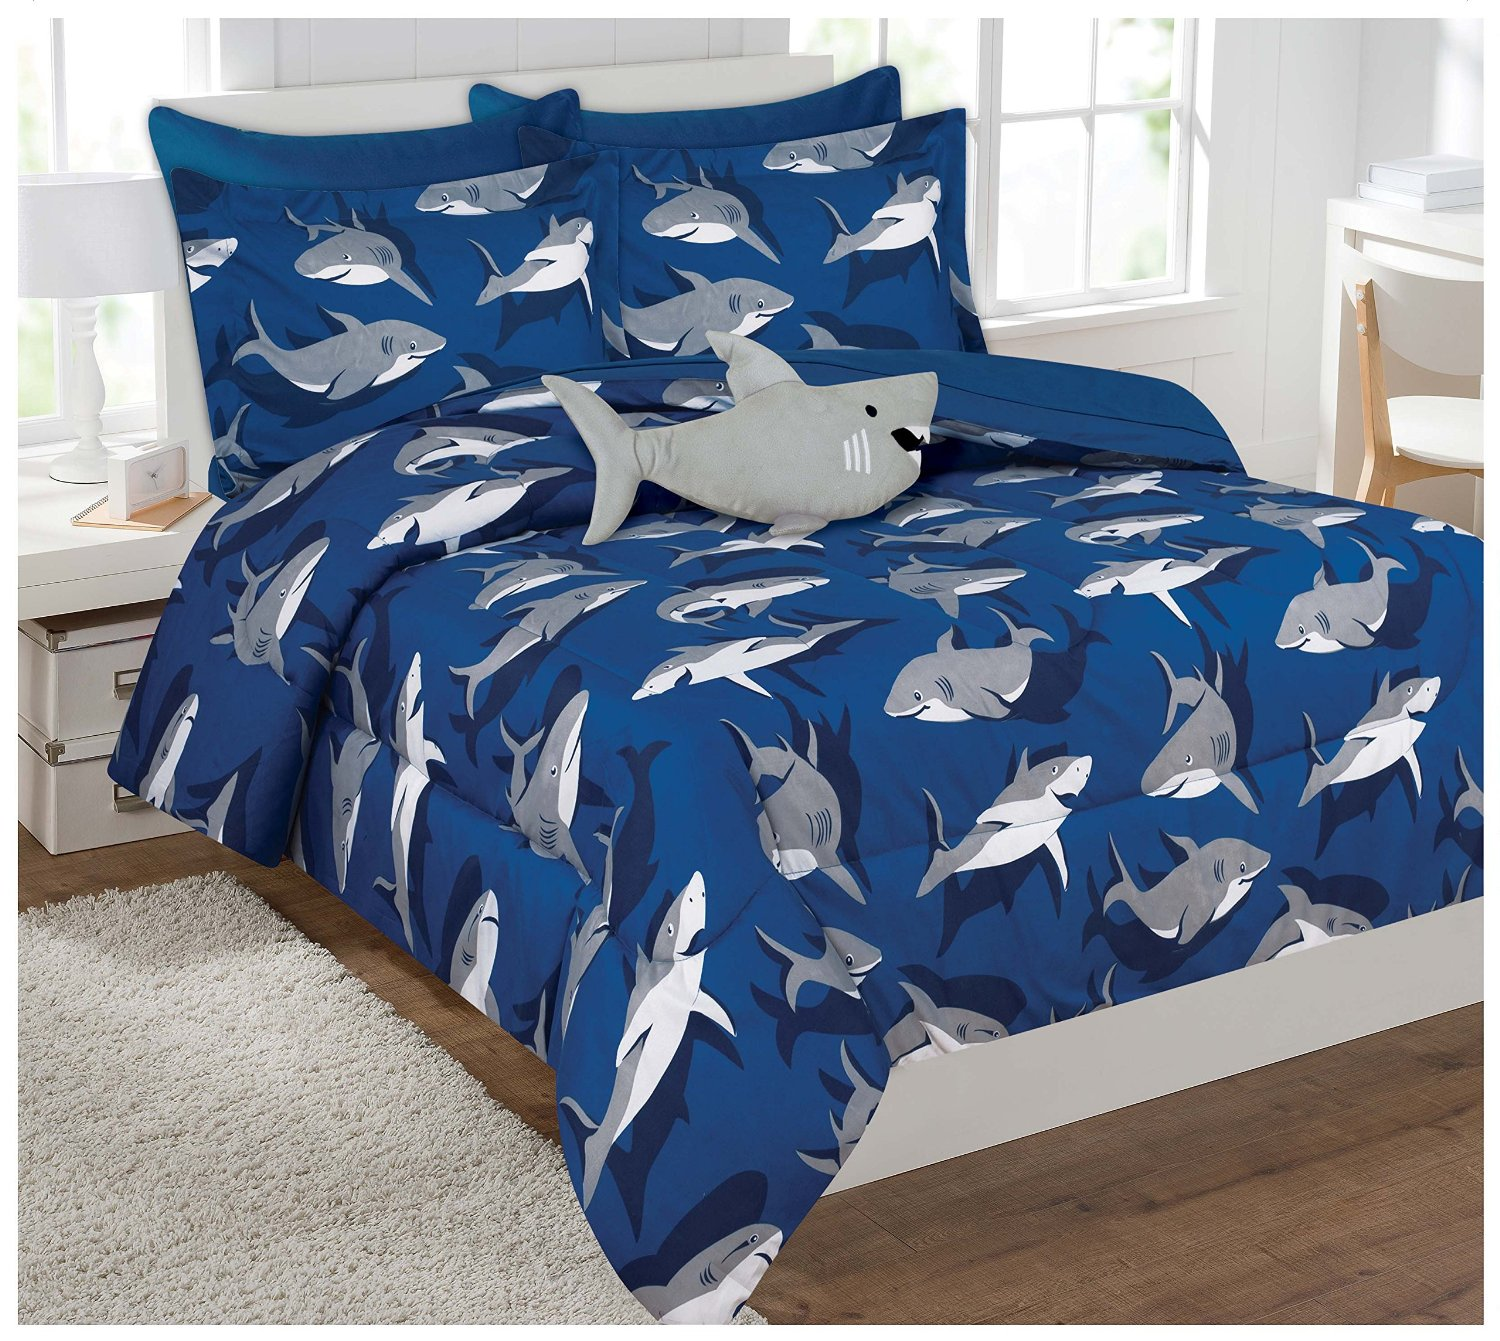 Fancy Collection 6 Pc Kids   teens Boys Shark Blue Grey Design Luxury Comforter Furry Buddy Included by